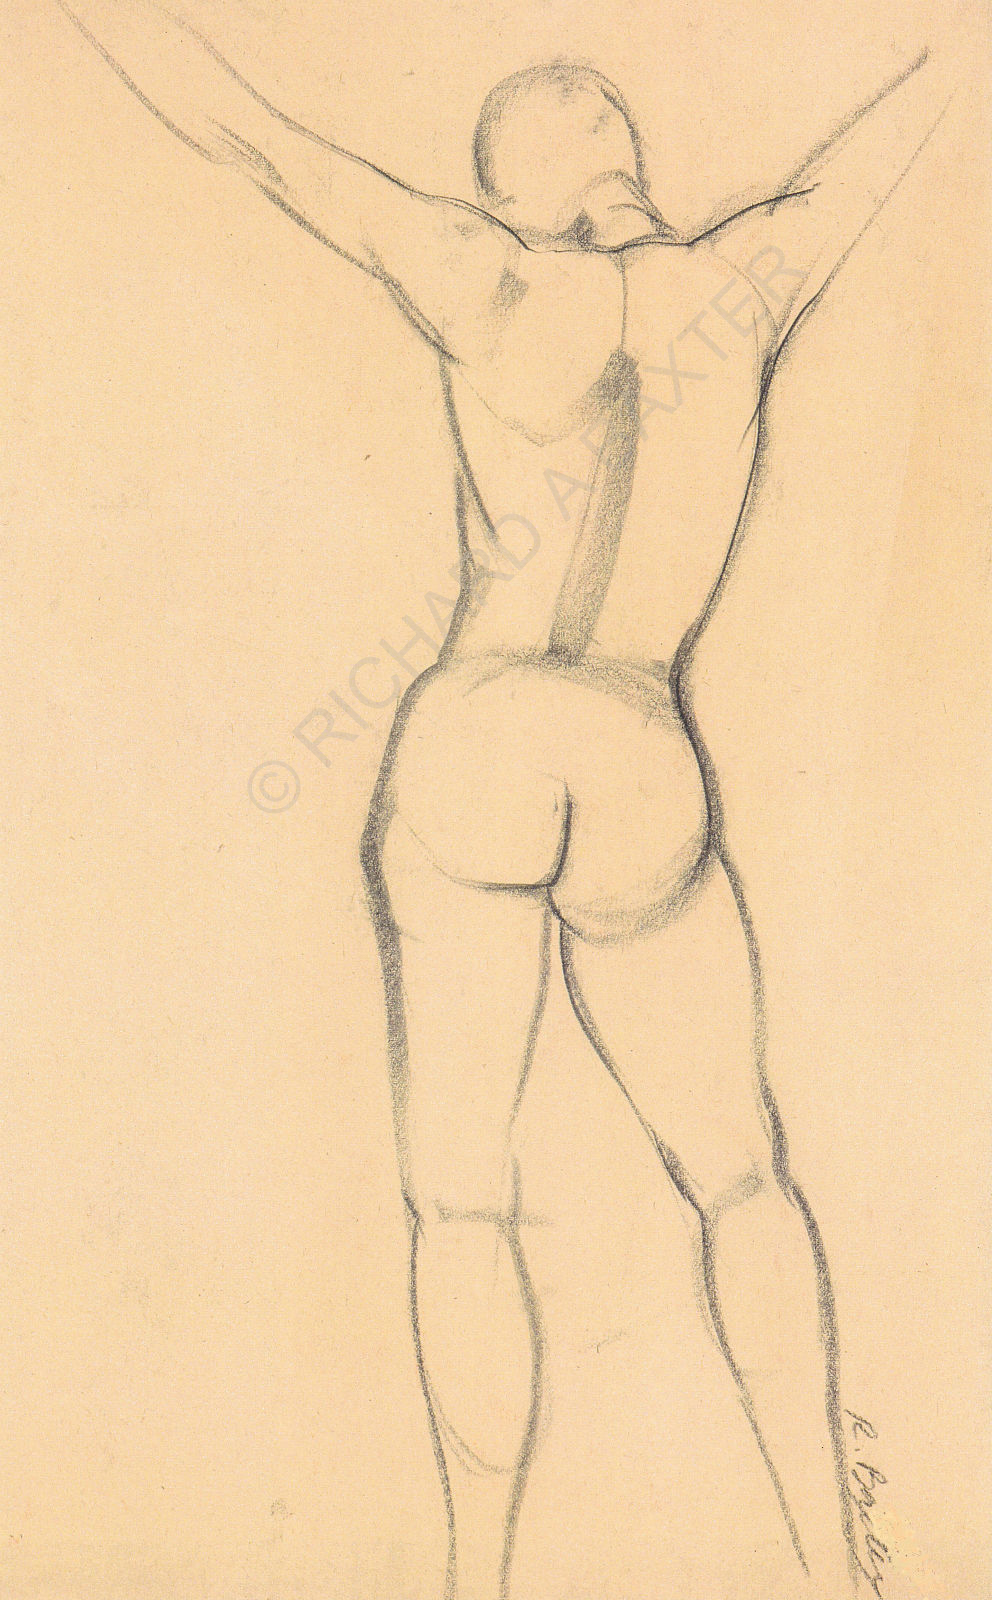 Drawing of standing figure by Dr. Baxter